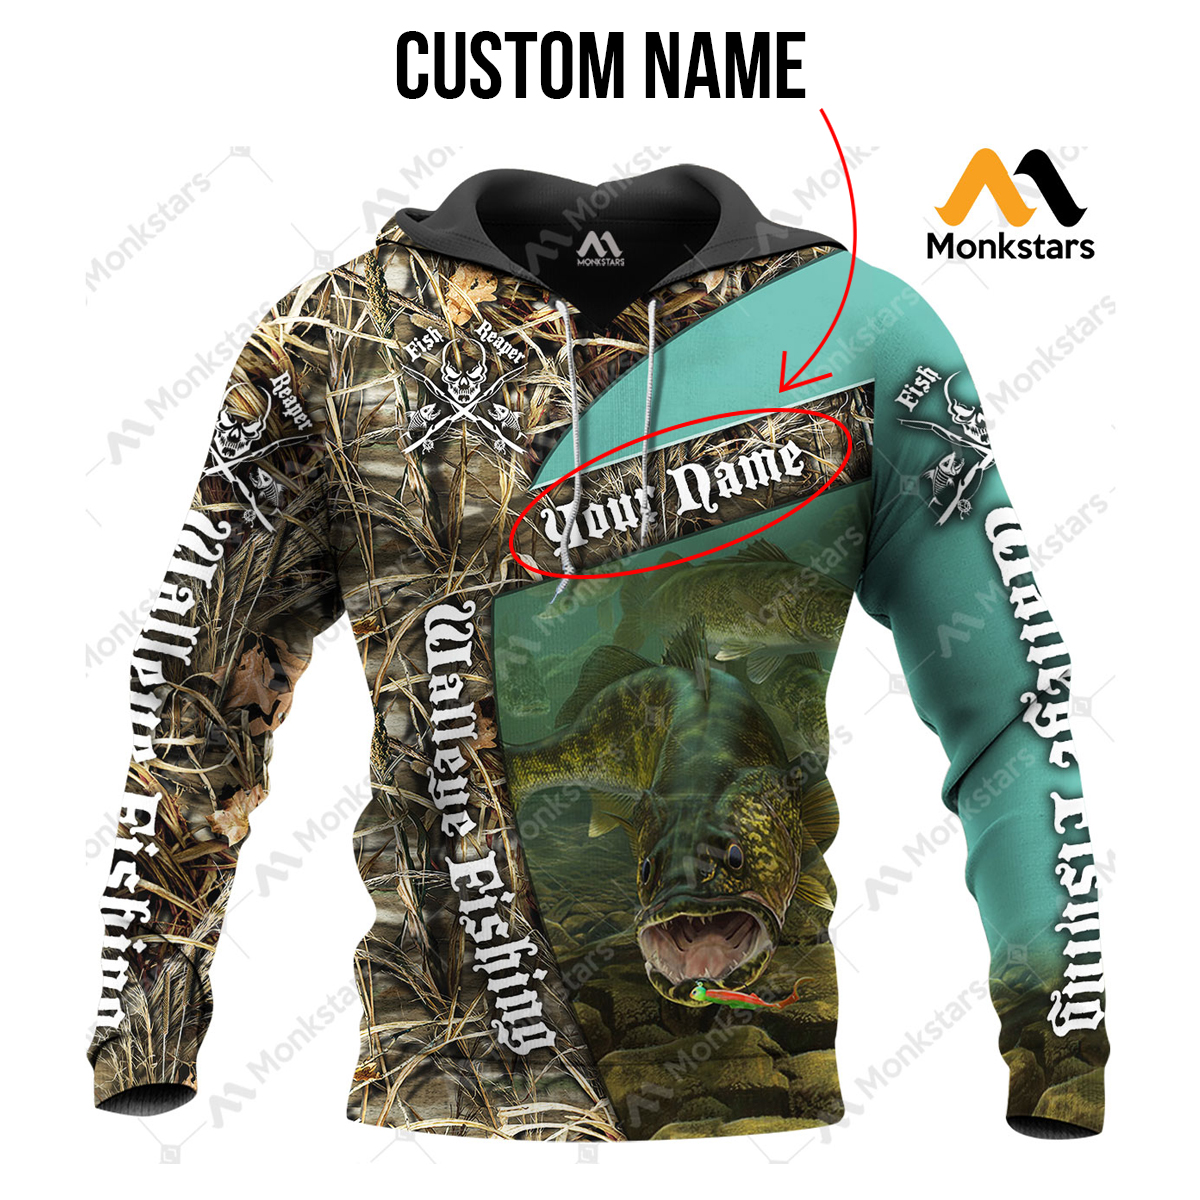 Monkstars_Fishing_Personalized-Your-Name-Walleye-Fishing_STQ2111998_3dc_hoodie.jpg